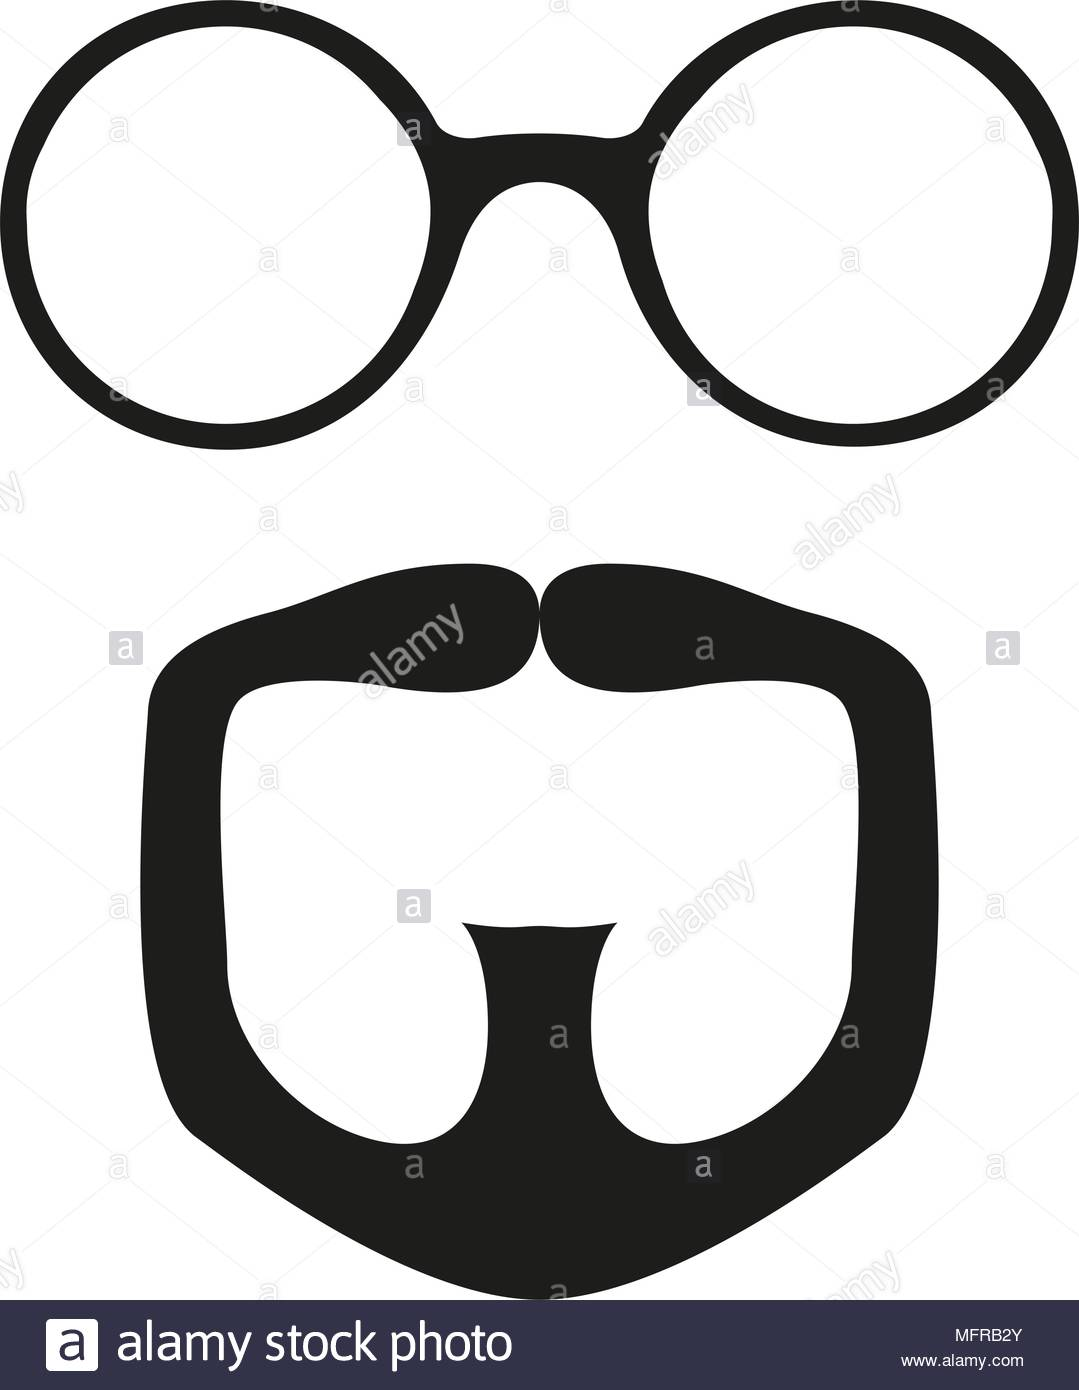 1079x1390 Black And White Goatee Glasses Silhouette Set. Fashion Vector